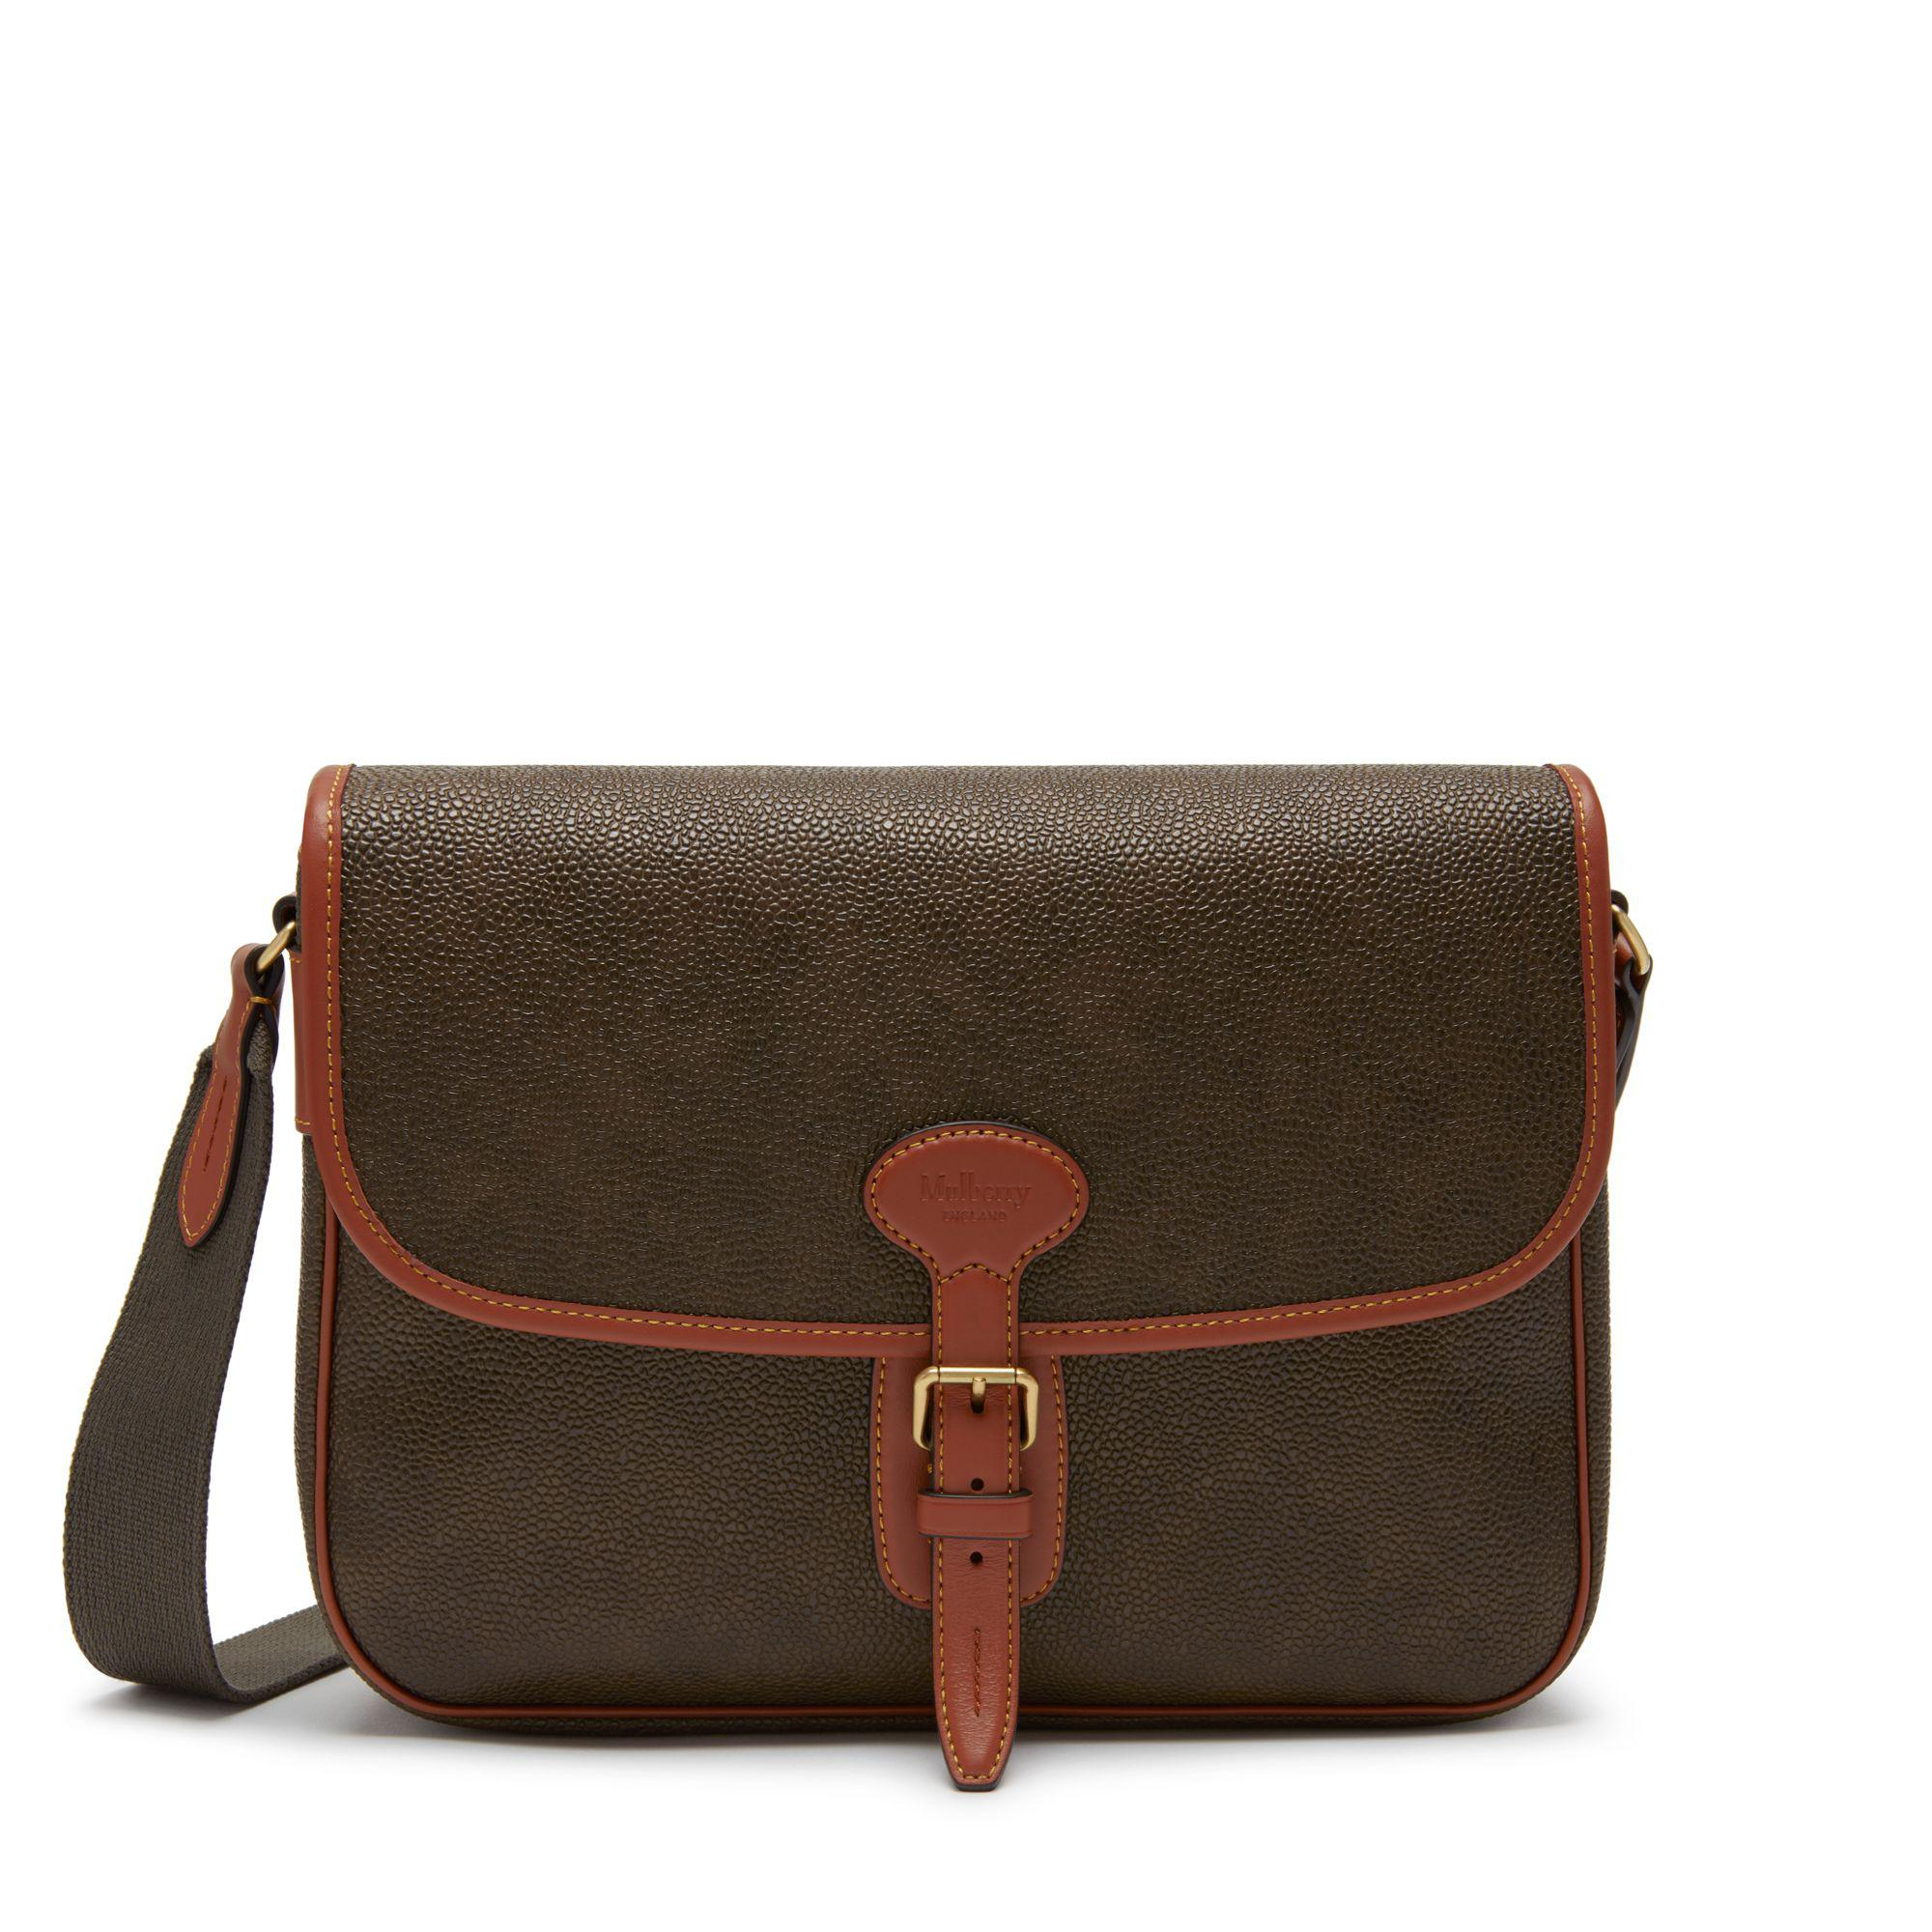 61b3eefd539c Lyst - Mulberry Small Heritage Messenger In Mole And Cognac ...